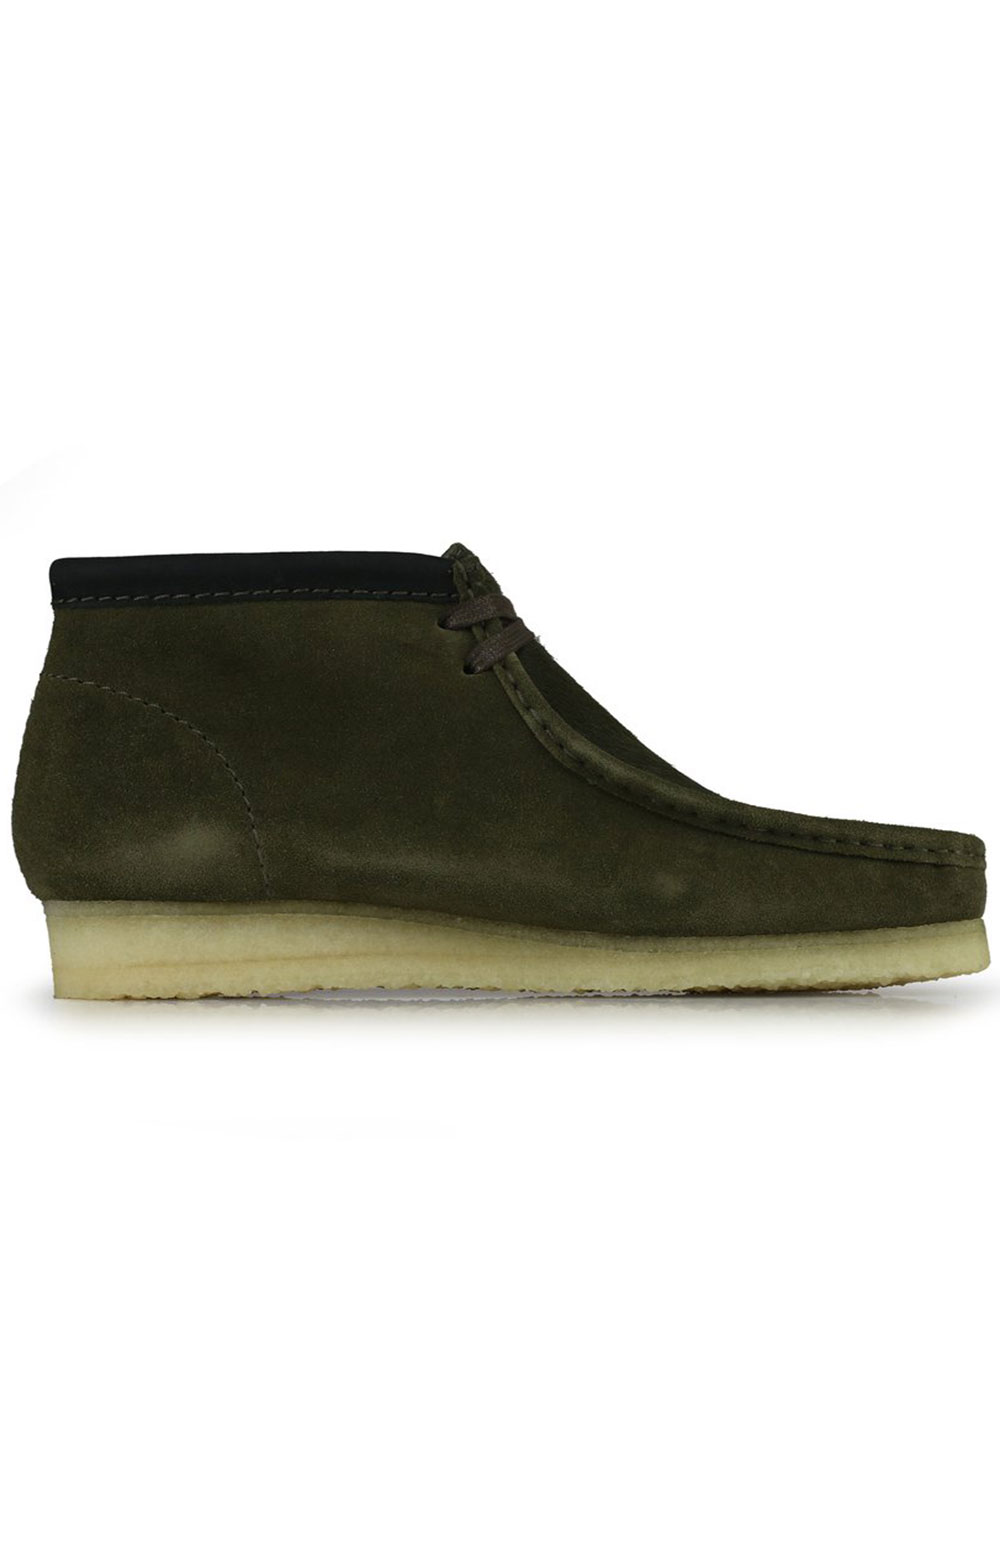 (26154740) Wallabee Boots - Olive Interest